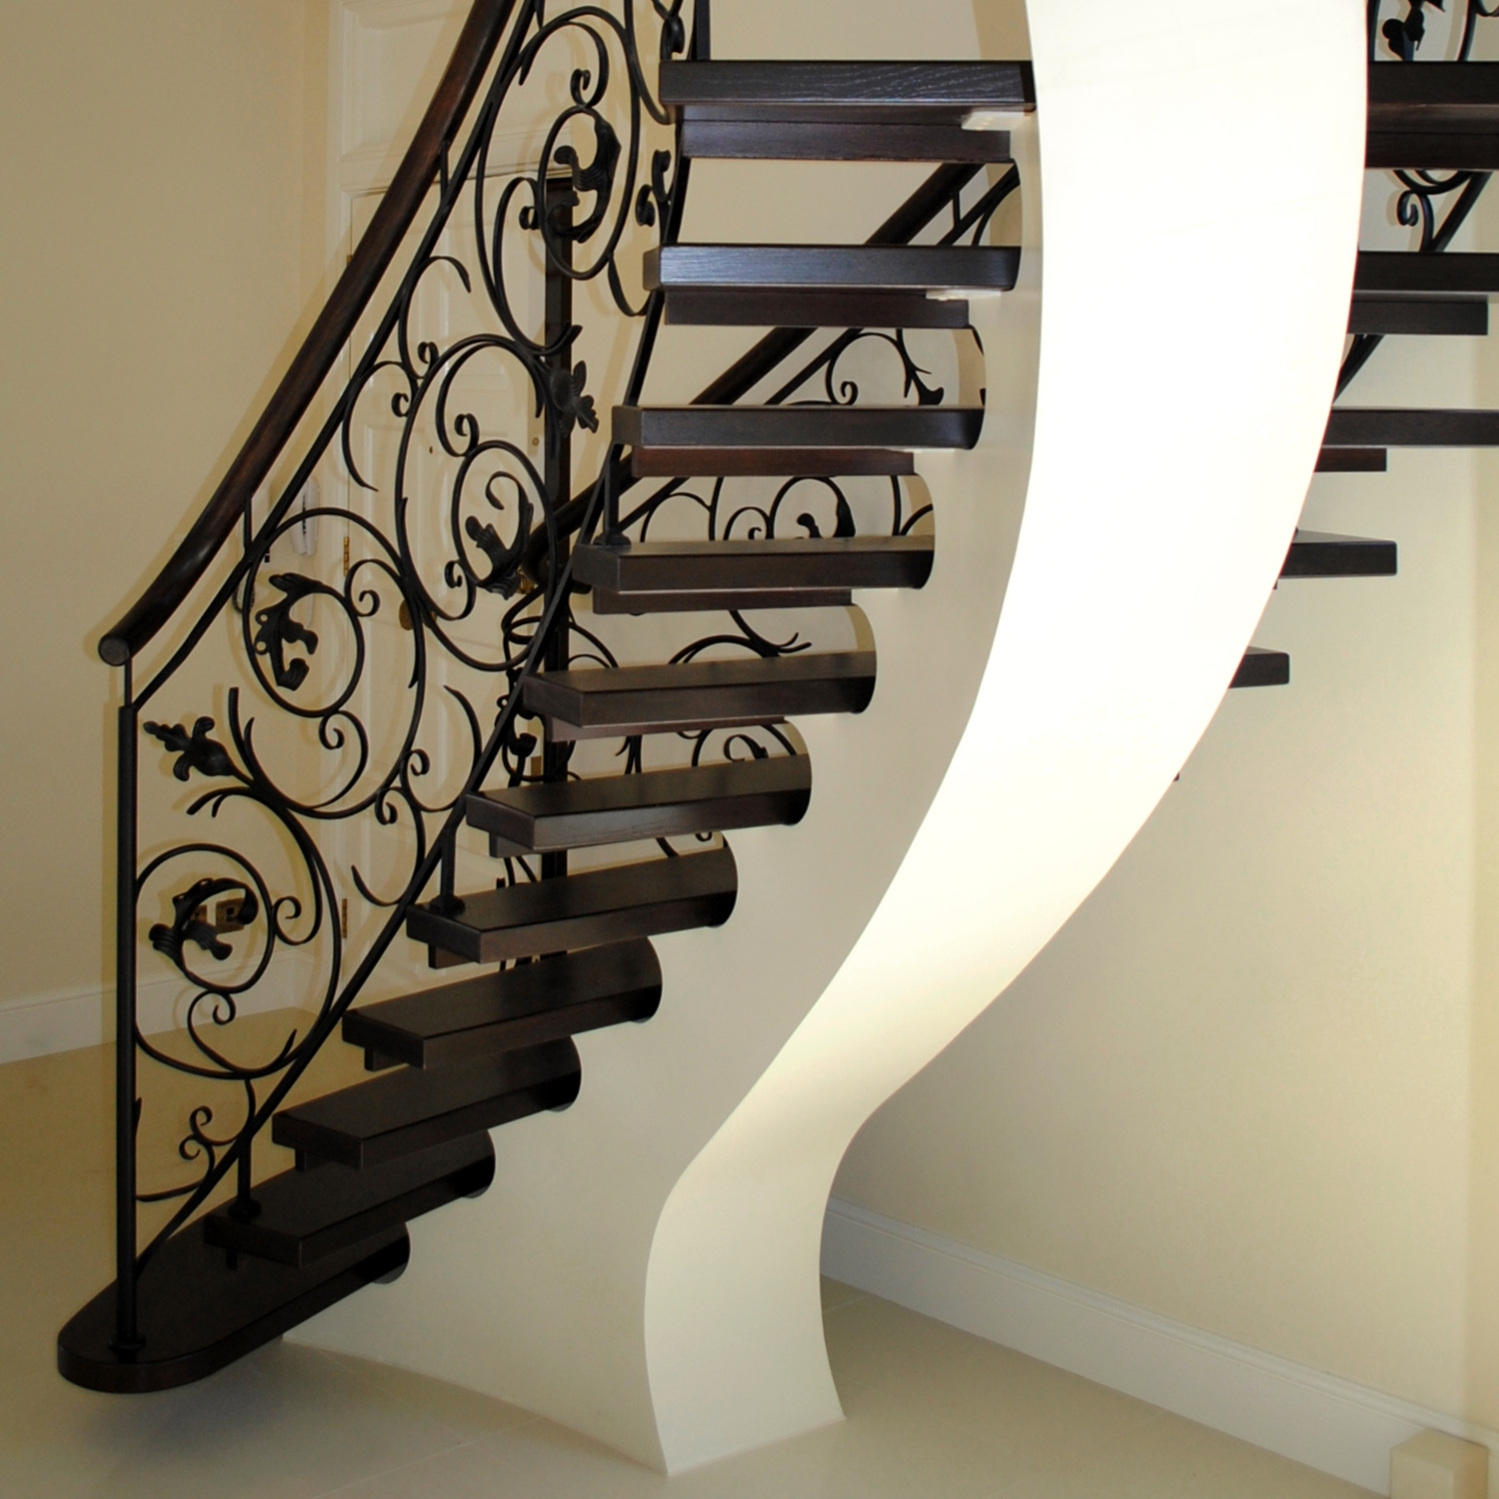 Modern Design Staircases   Steel And Wood Staircase Design   Inside   Outdoor   Detail   Wooden   Metal